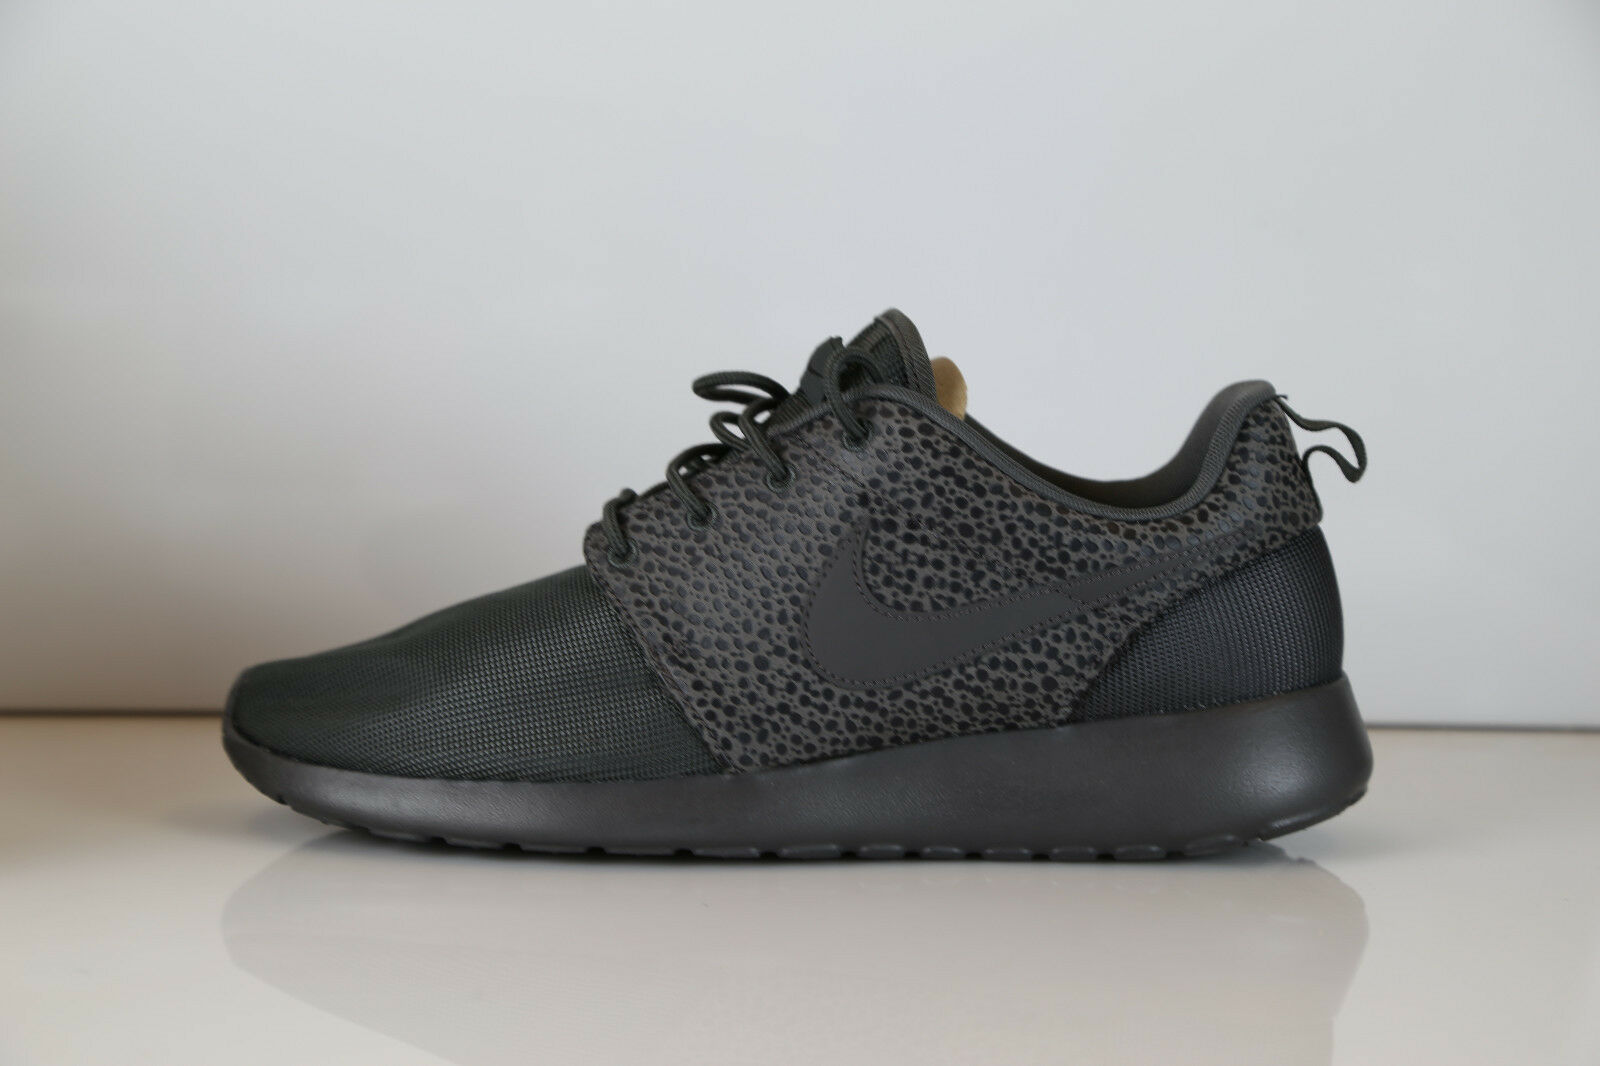 Nike Roshe Run Premium Safari Midnight Fog Black 525234-001 10  rosherun 1 free